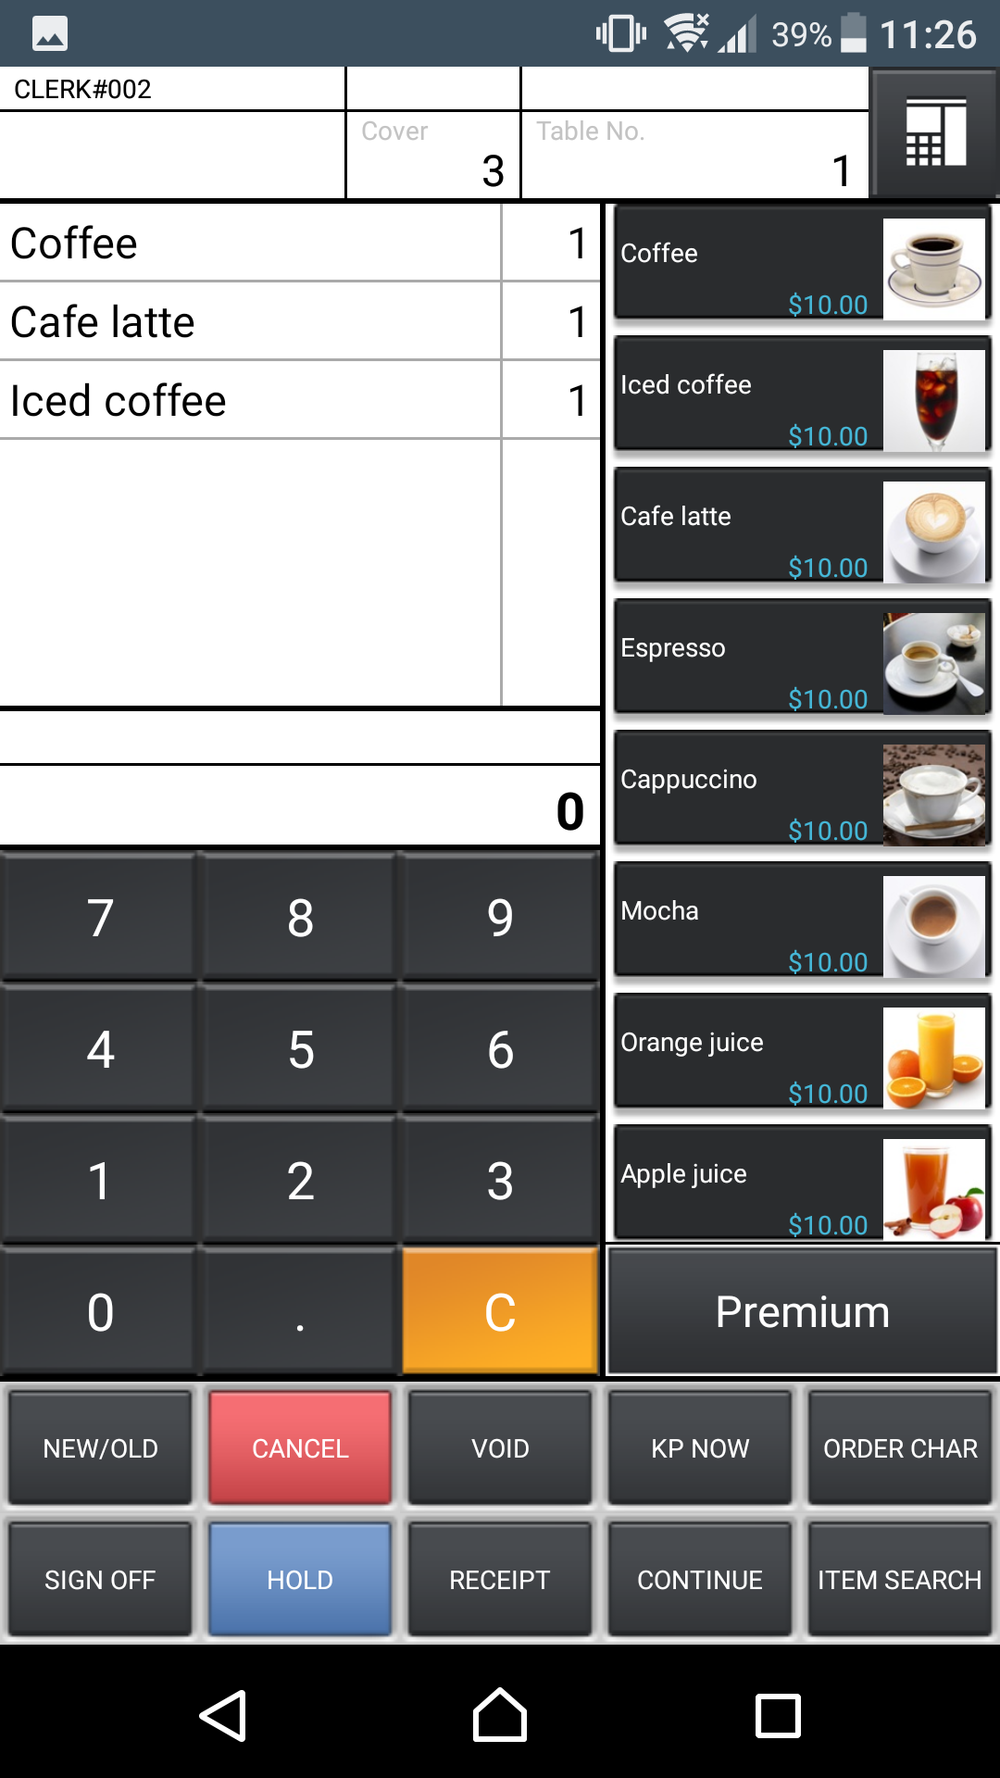 Casio Mobile Ordering 1.png